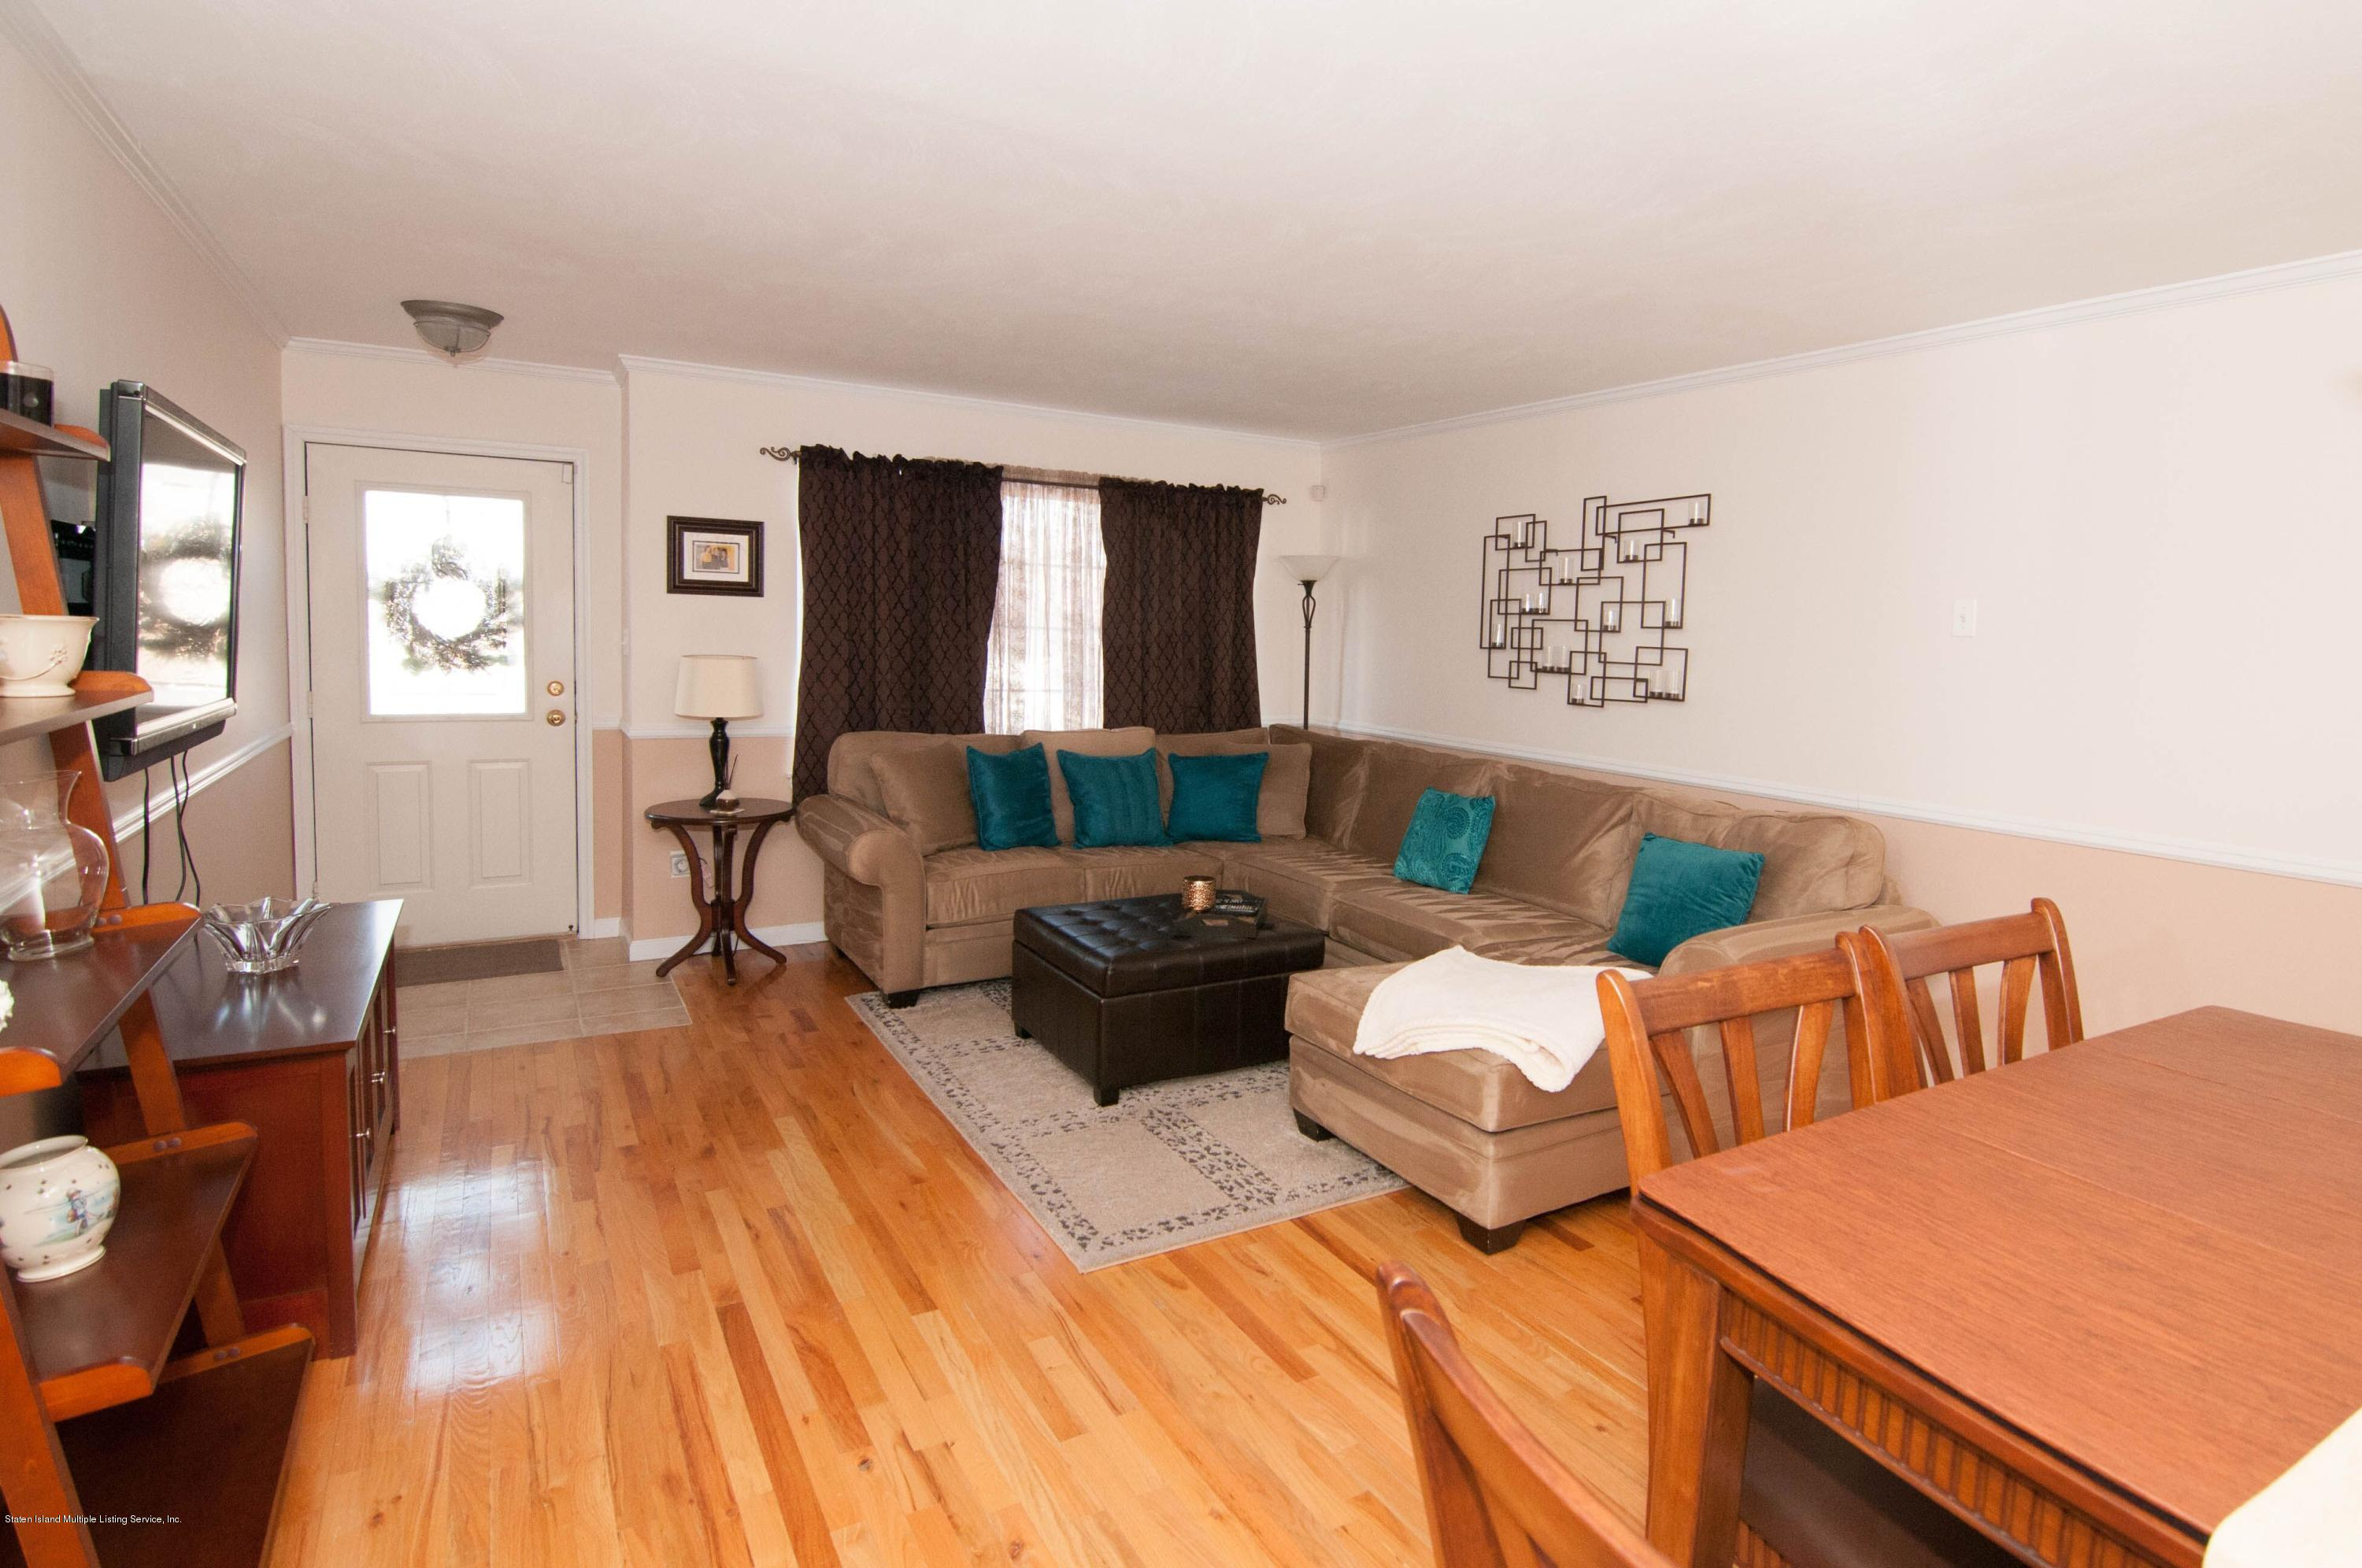 Single Family - Attached 56 Endview Street  Staten Island, NY 10312, MLS-1131439-5